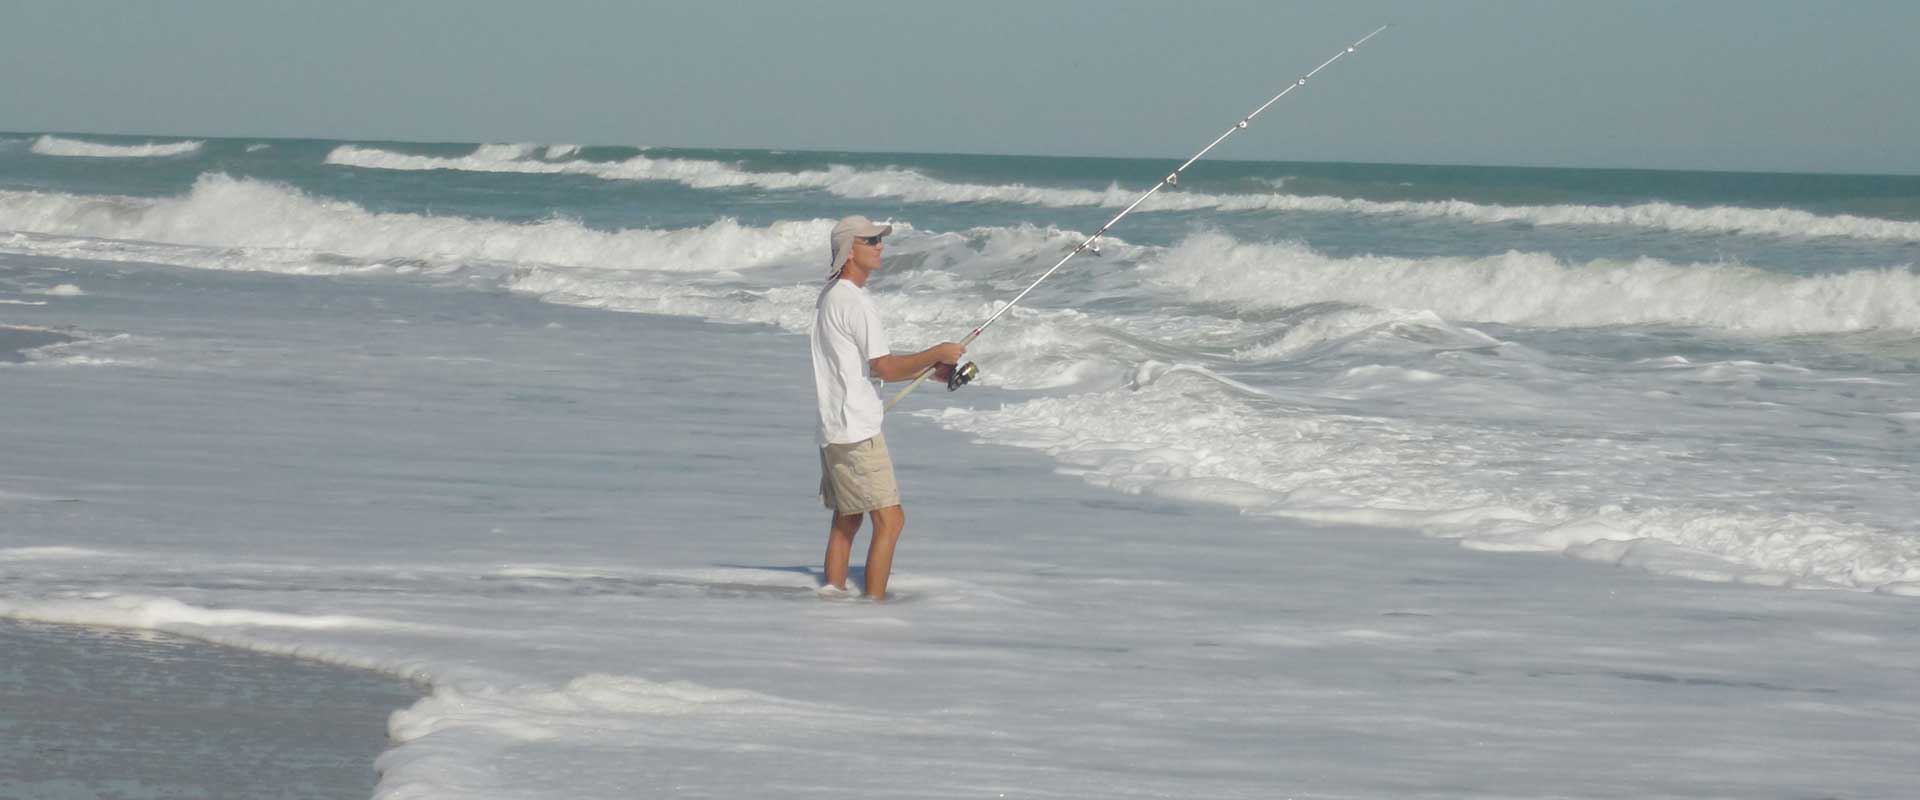 Fish, surf, and sun on Melbourne, Florida's beautiful beaches.